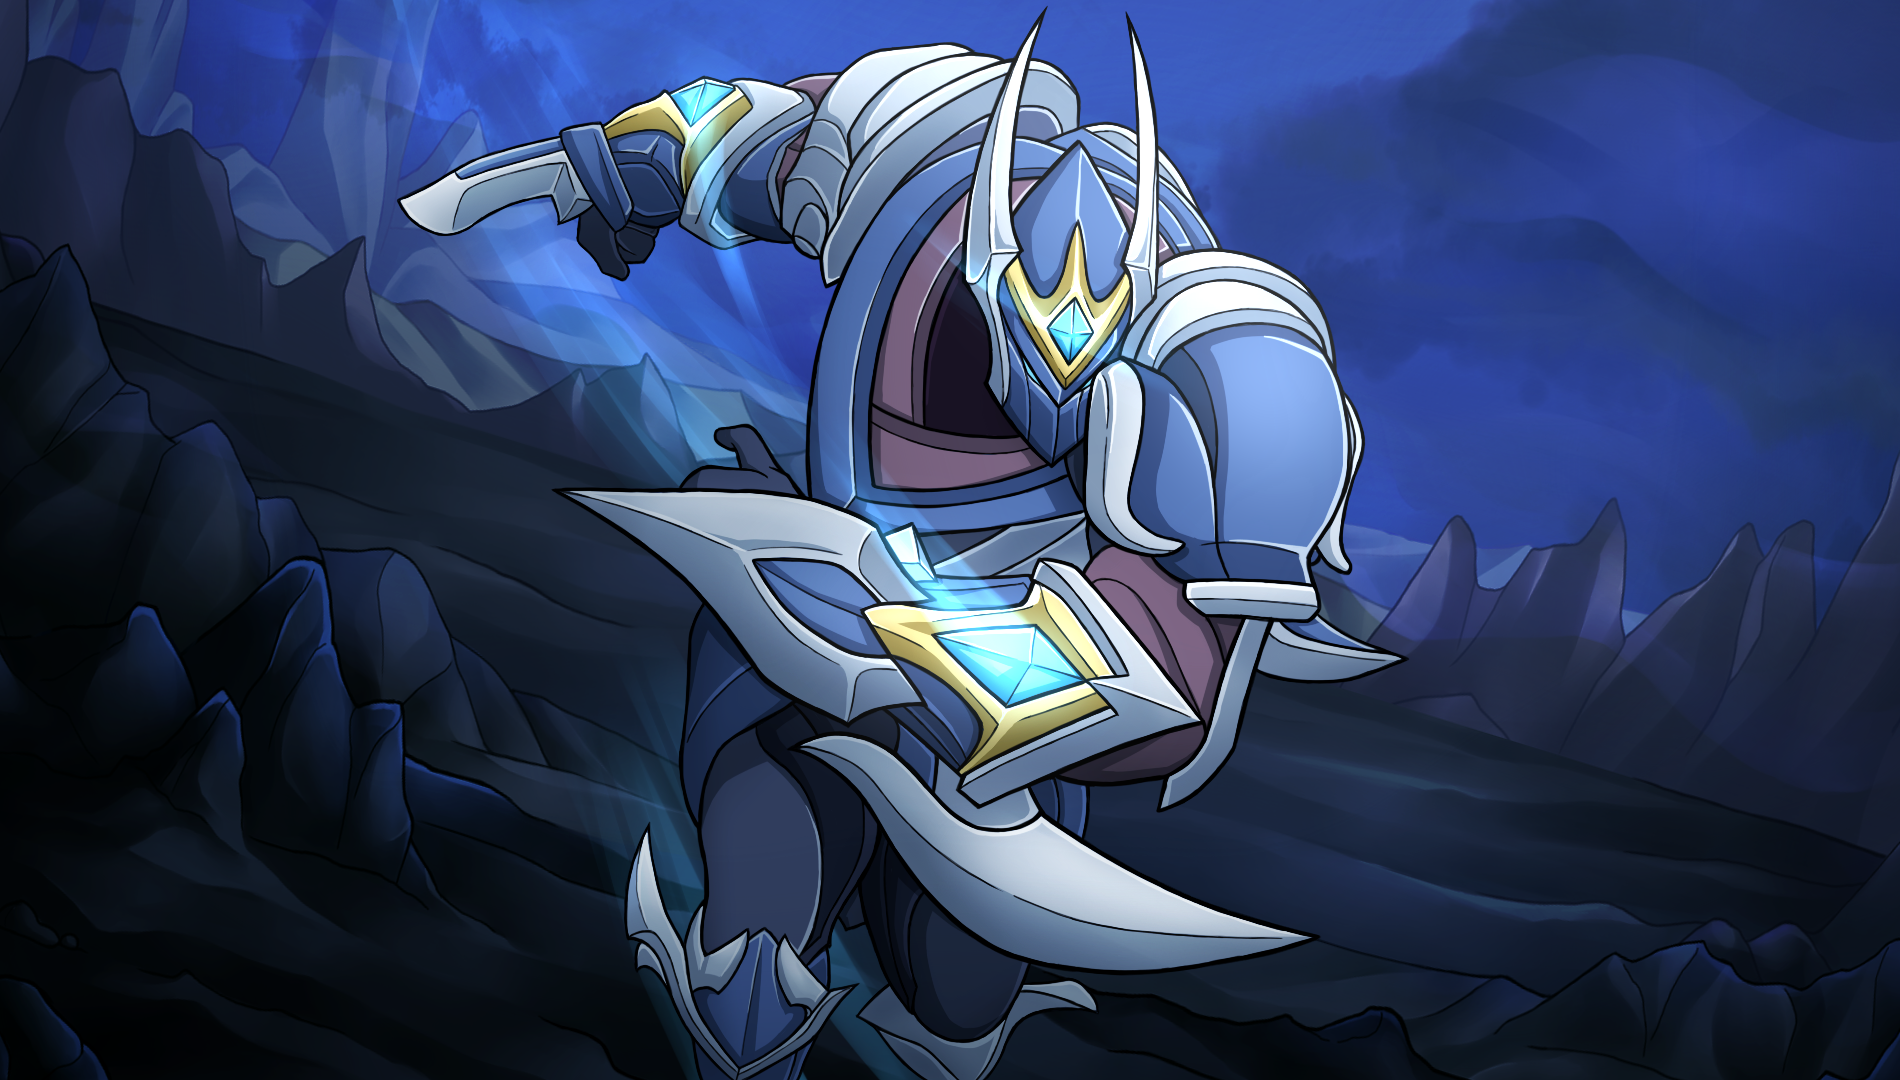 Championship Zed by Meerclar